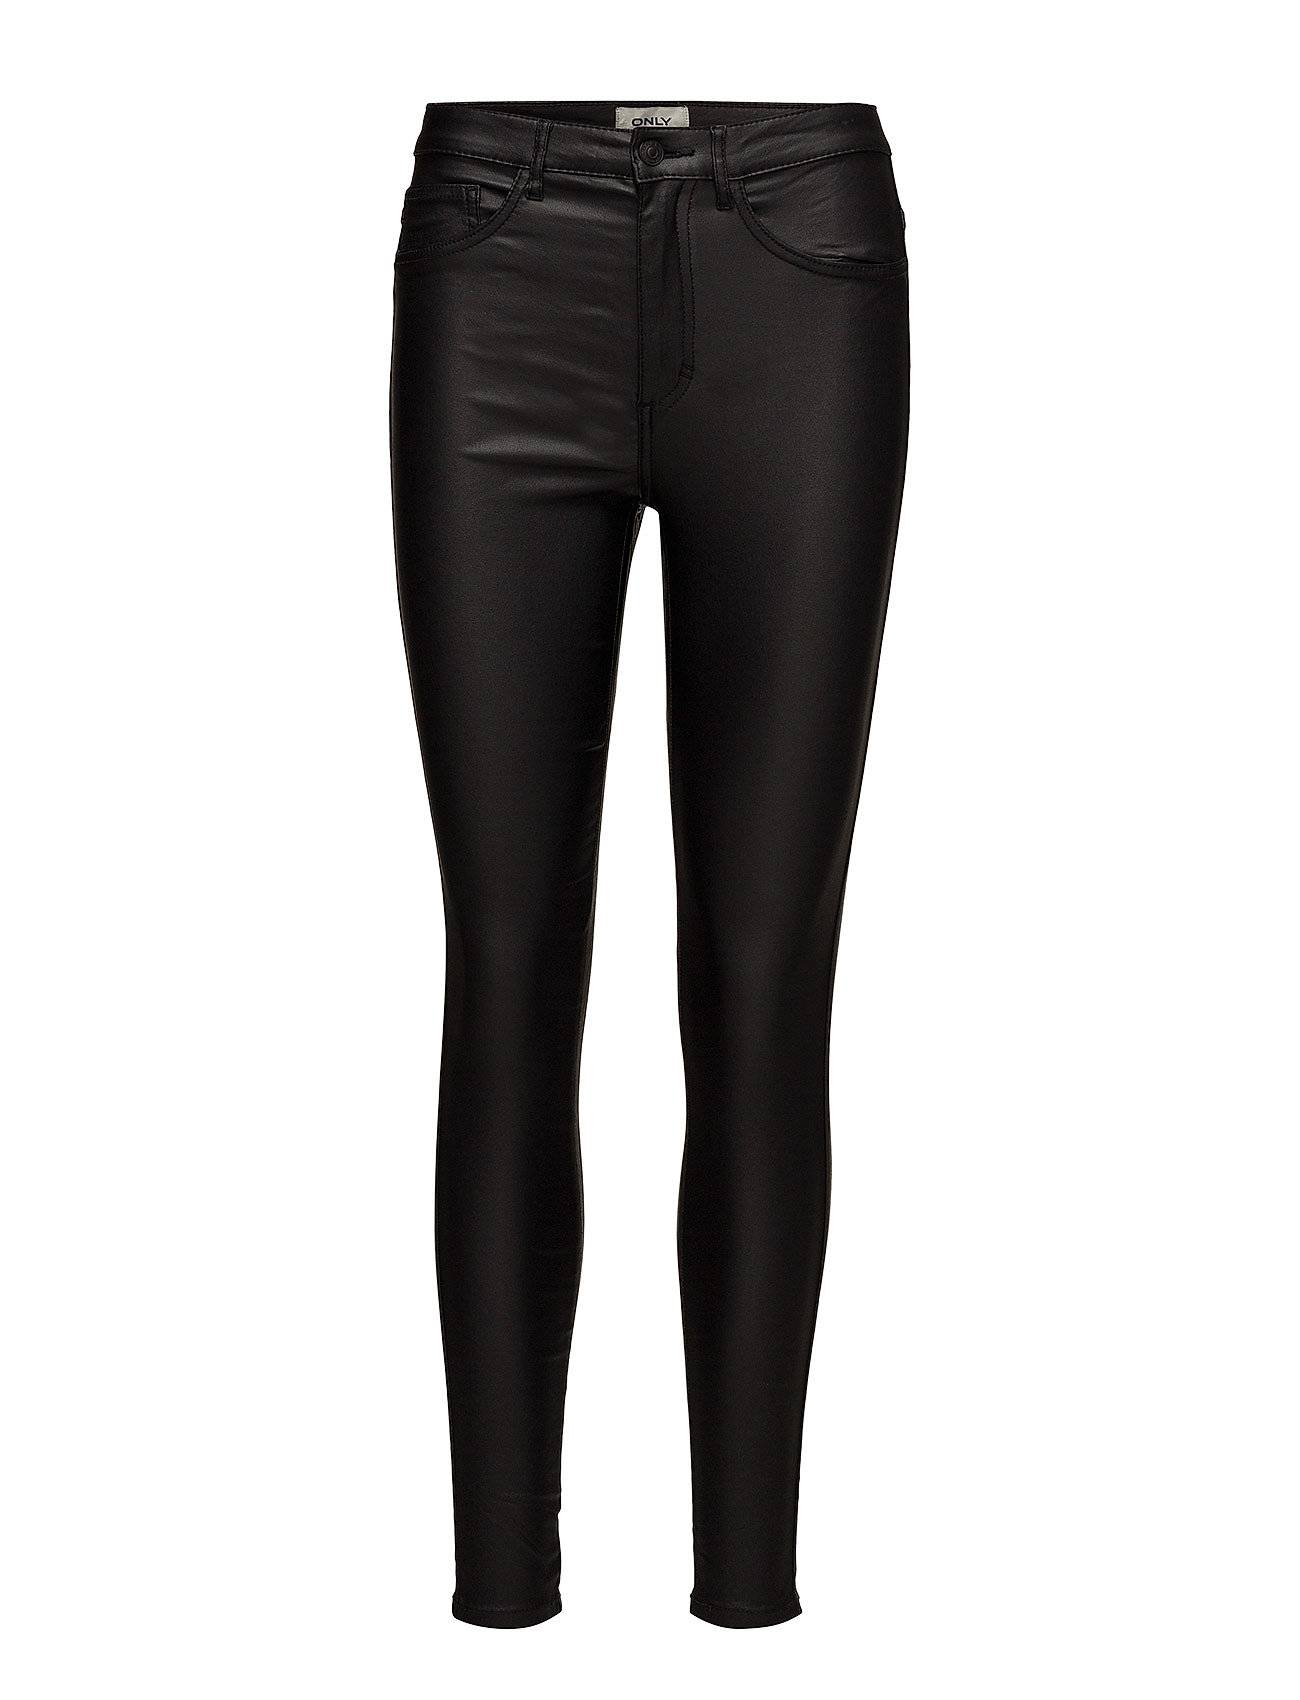 Image of ONLY Onlroyal Hw Sk Rock Coated Pim Noos Leather Leggings/Housut Musta ONLY